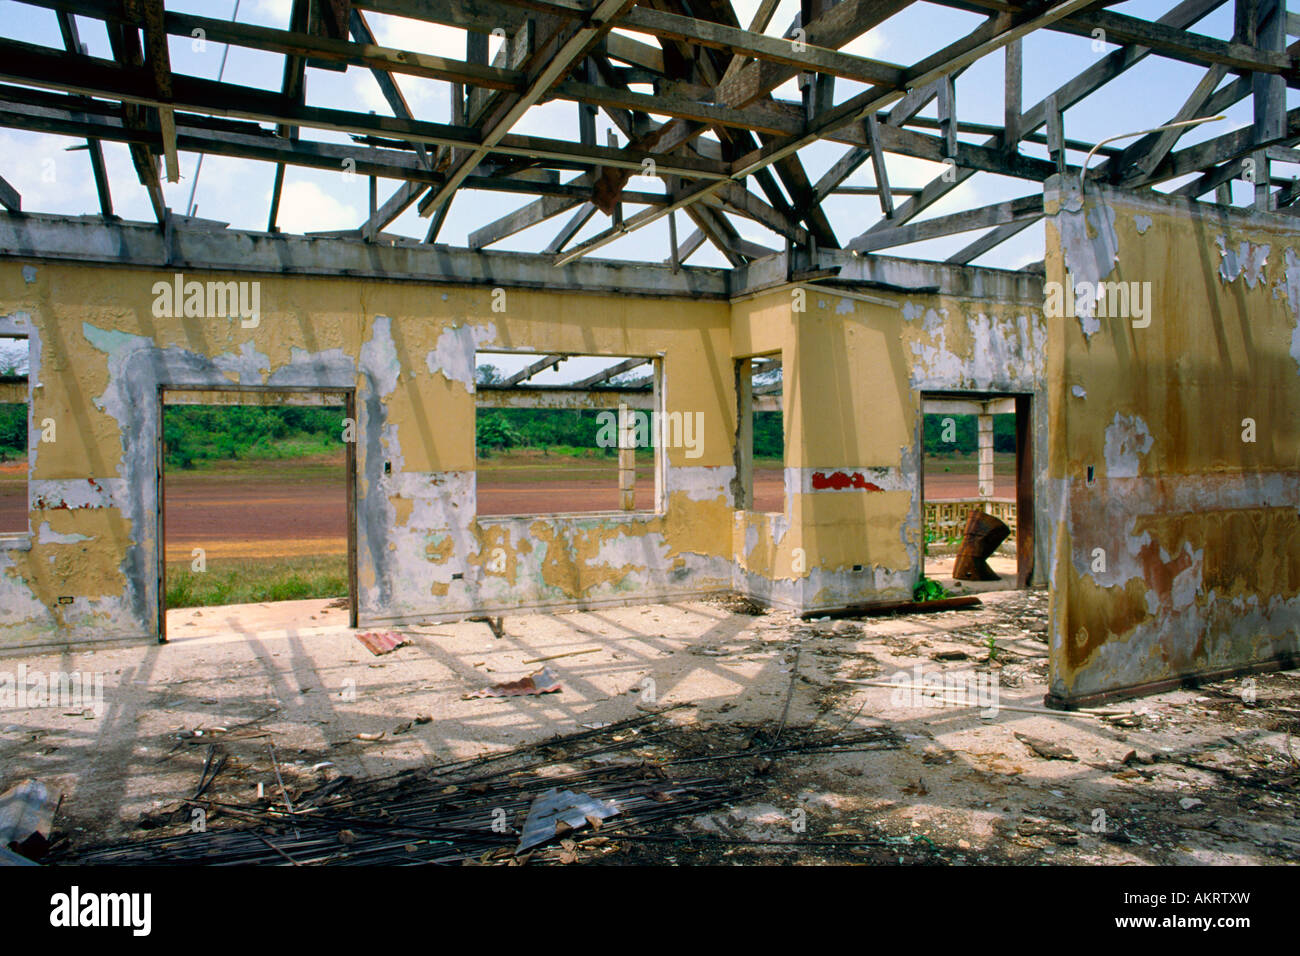 The gutted remains of the terminal building at Zwedru Liberia airport - Stock Image